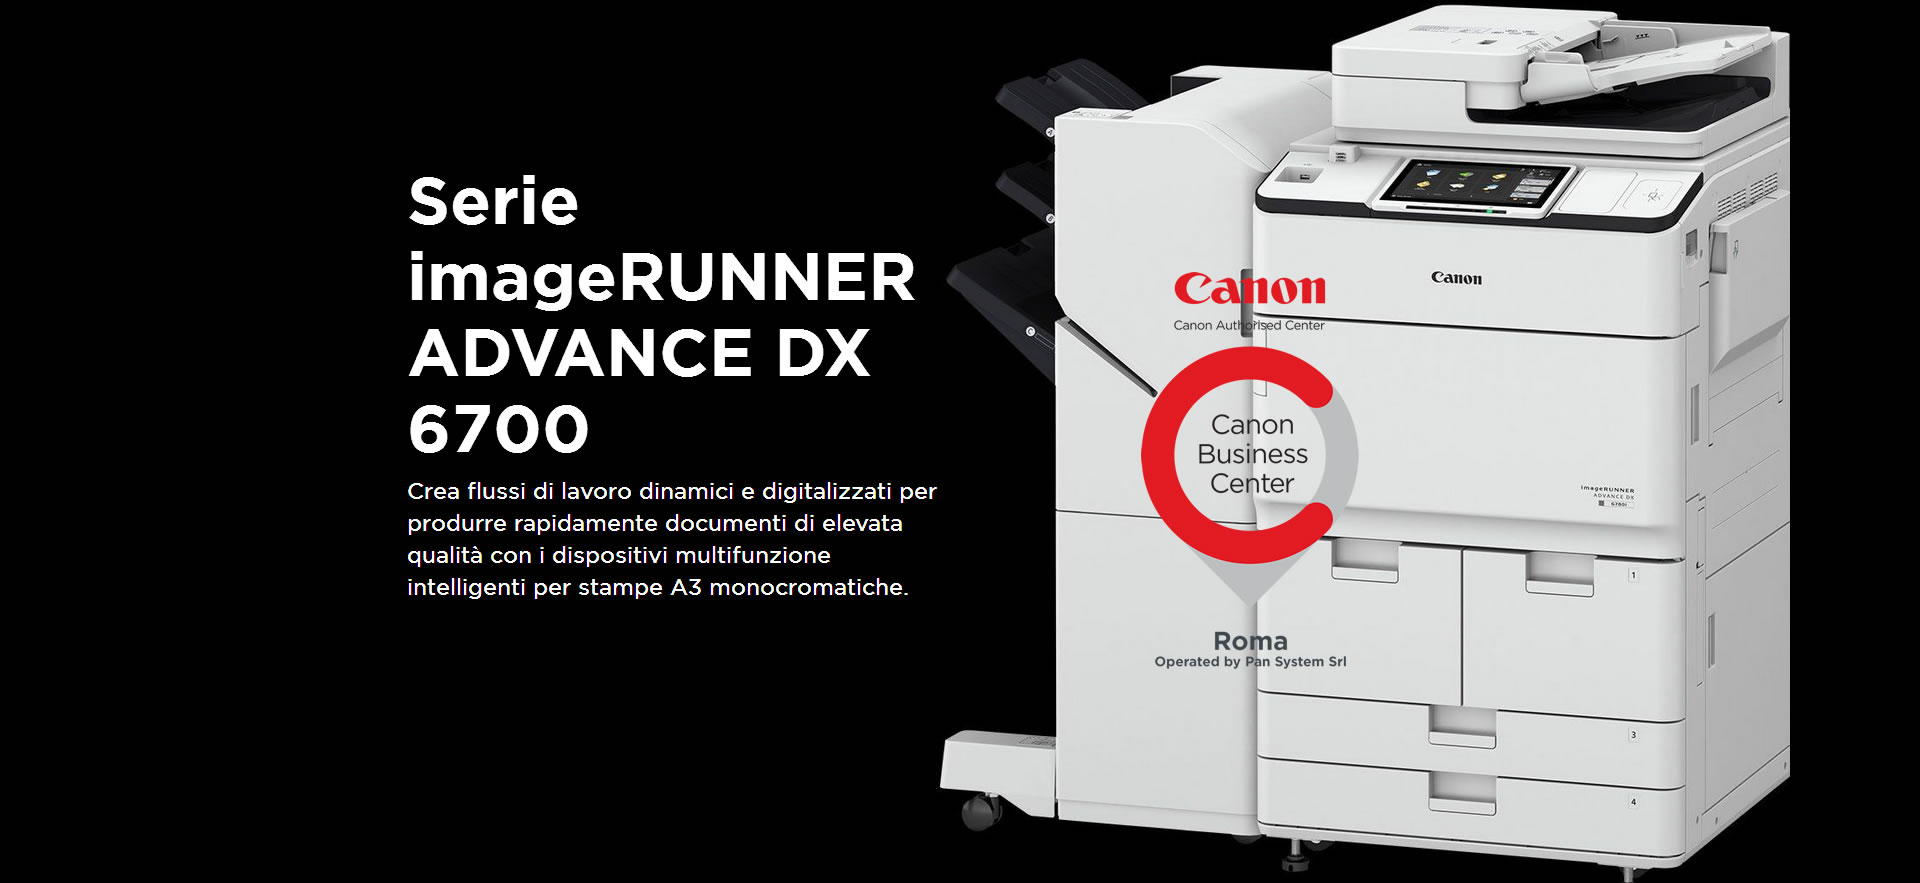 imageRUNNER ADVANCE DX 6700